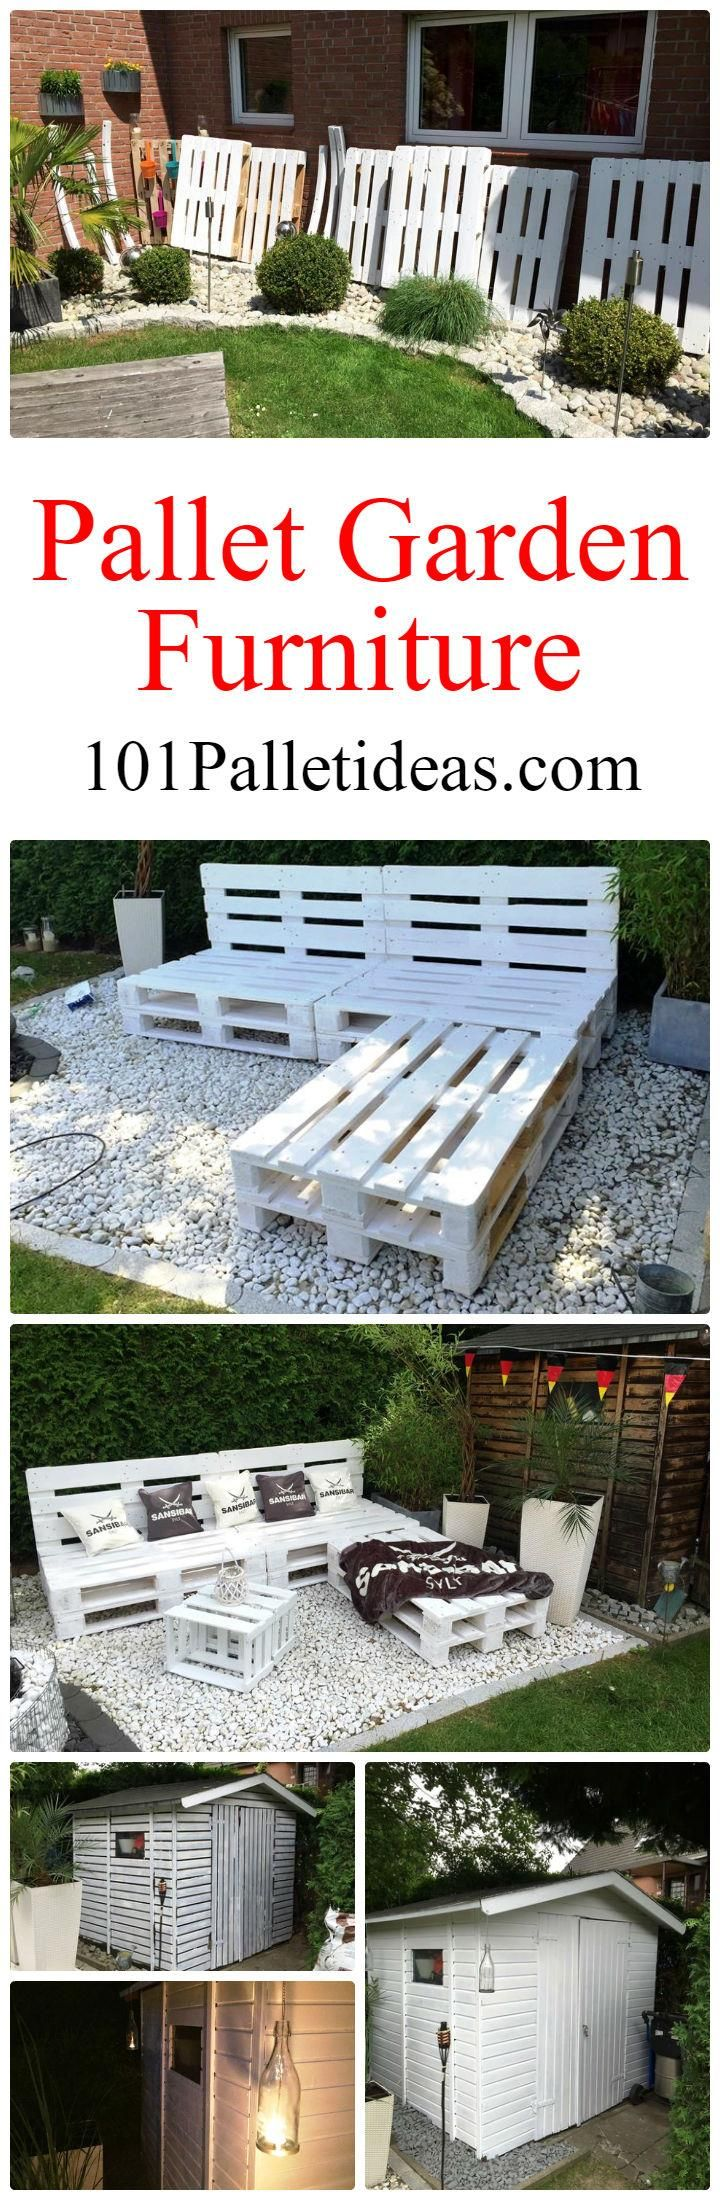 Diy comfortable pallet adirondack chair 101 pallets - Pallet Garden Furniture Diy 101 Pallet Ideas